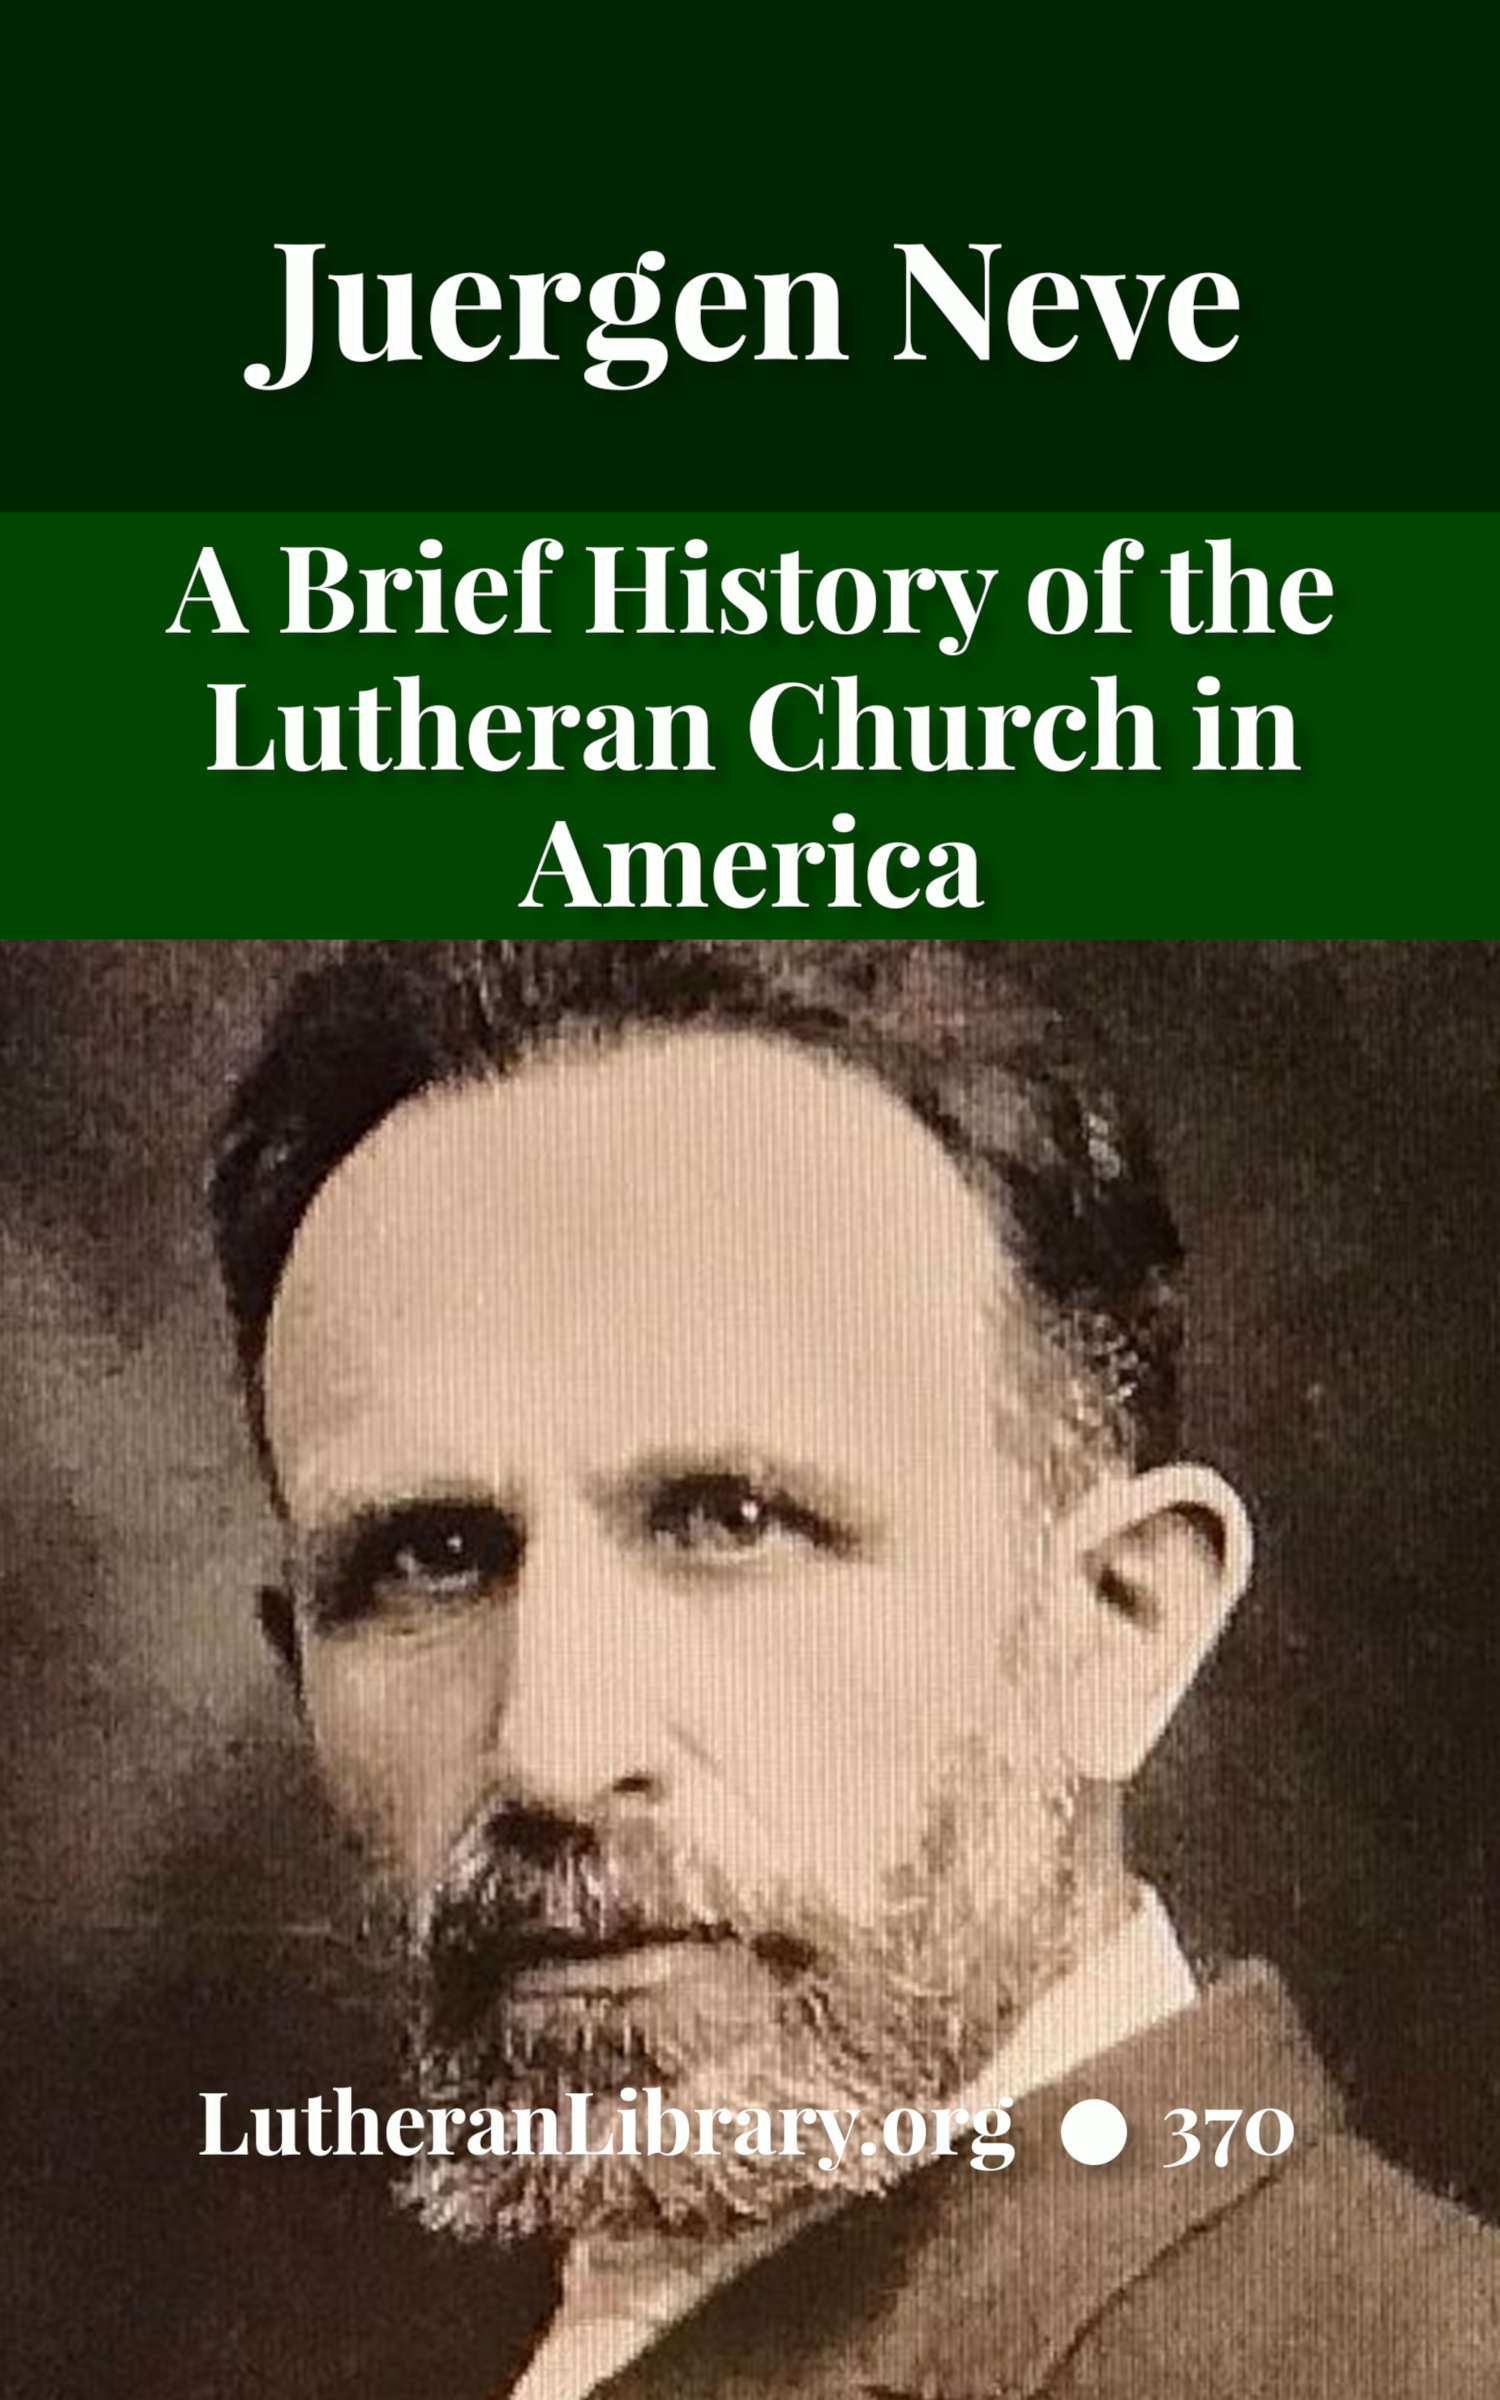 A Brief History of the Lutheran Church in America by Juergen Neve